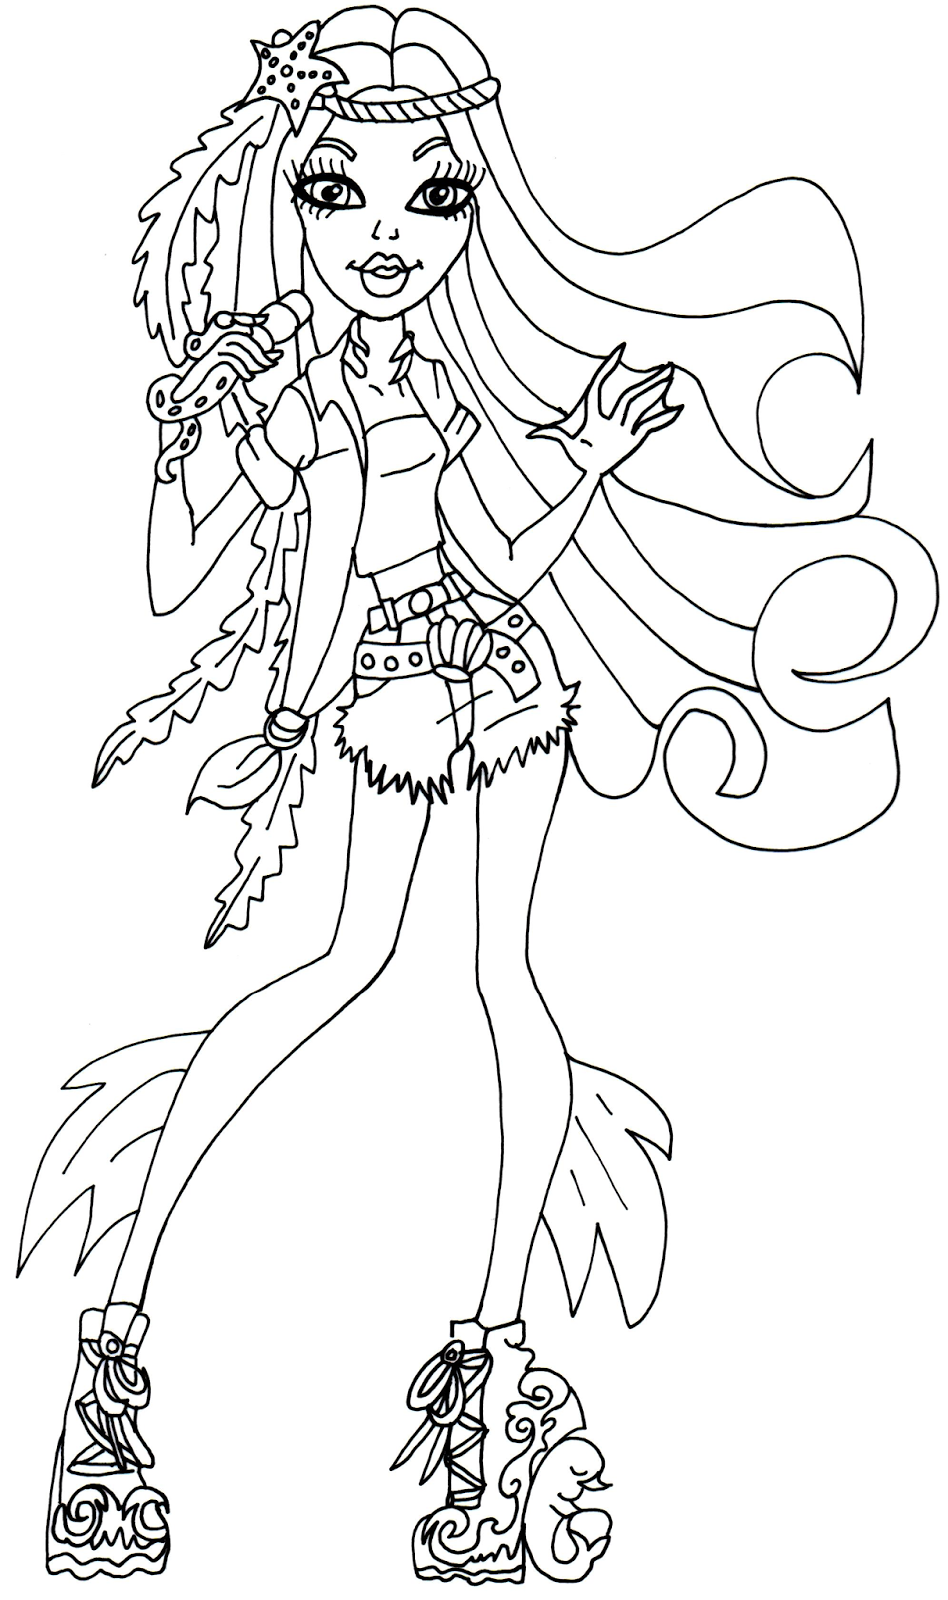 Monster high printable color pages for Print monster high coloring pages